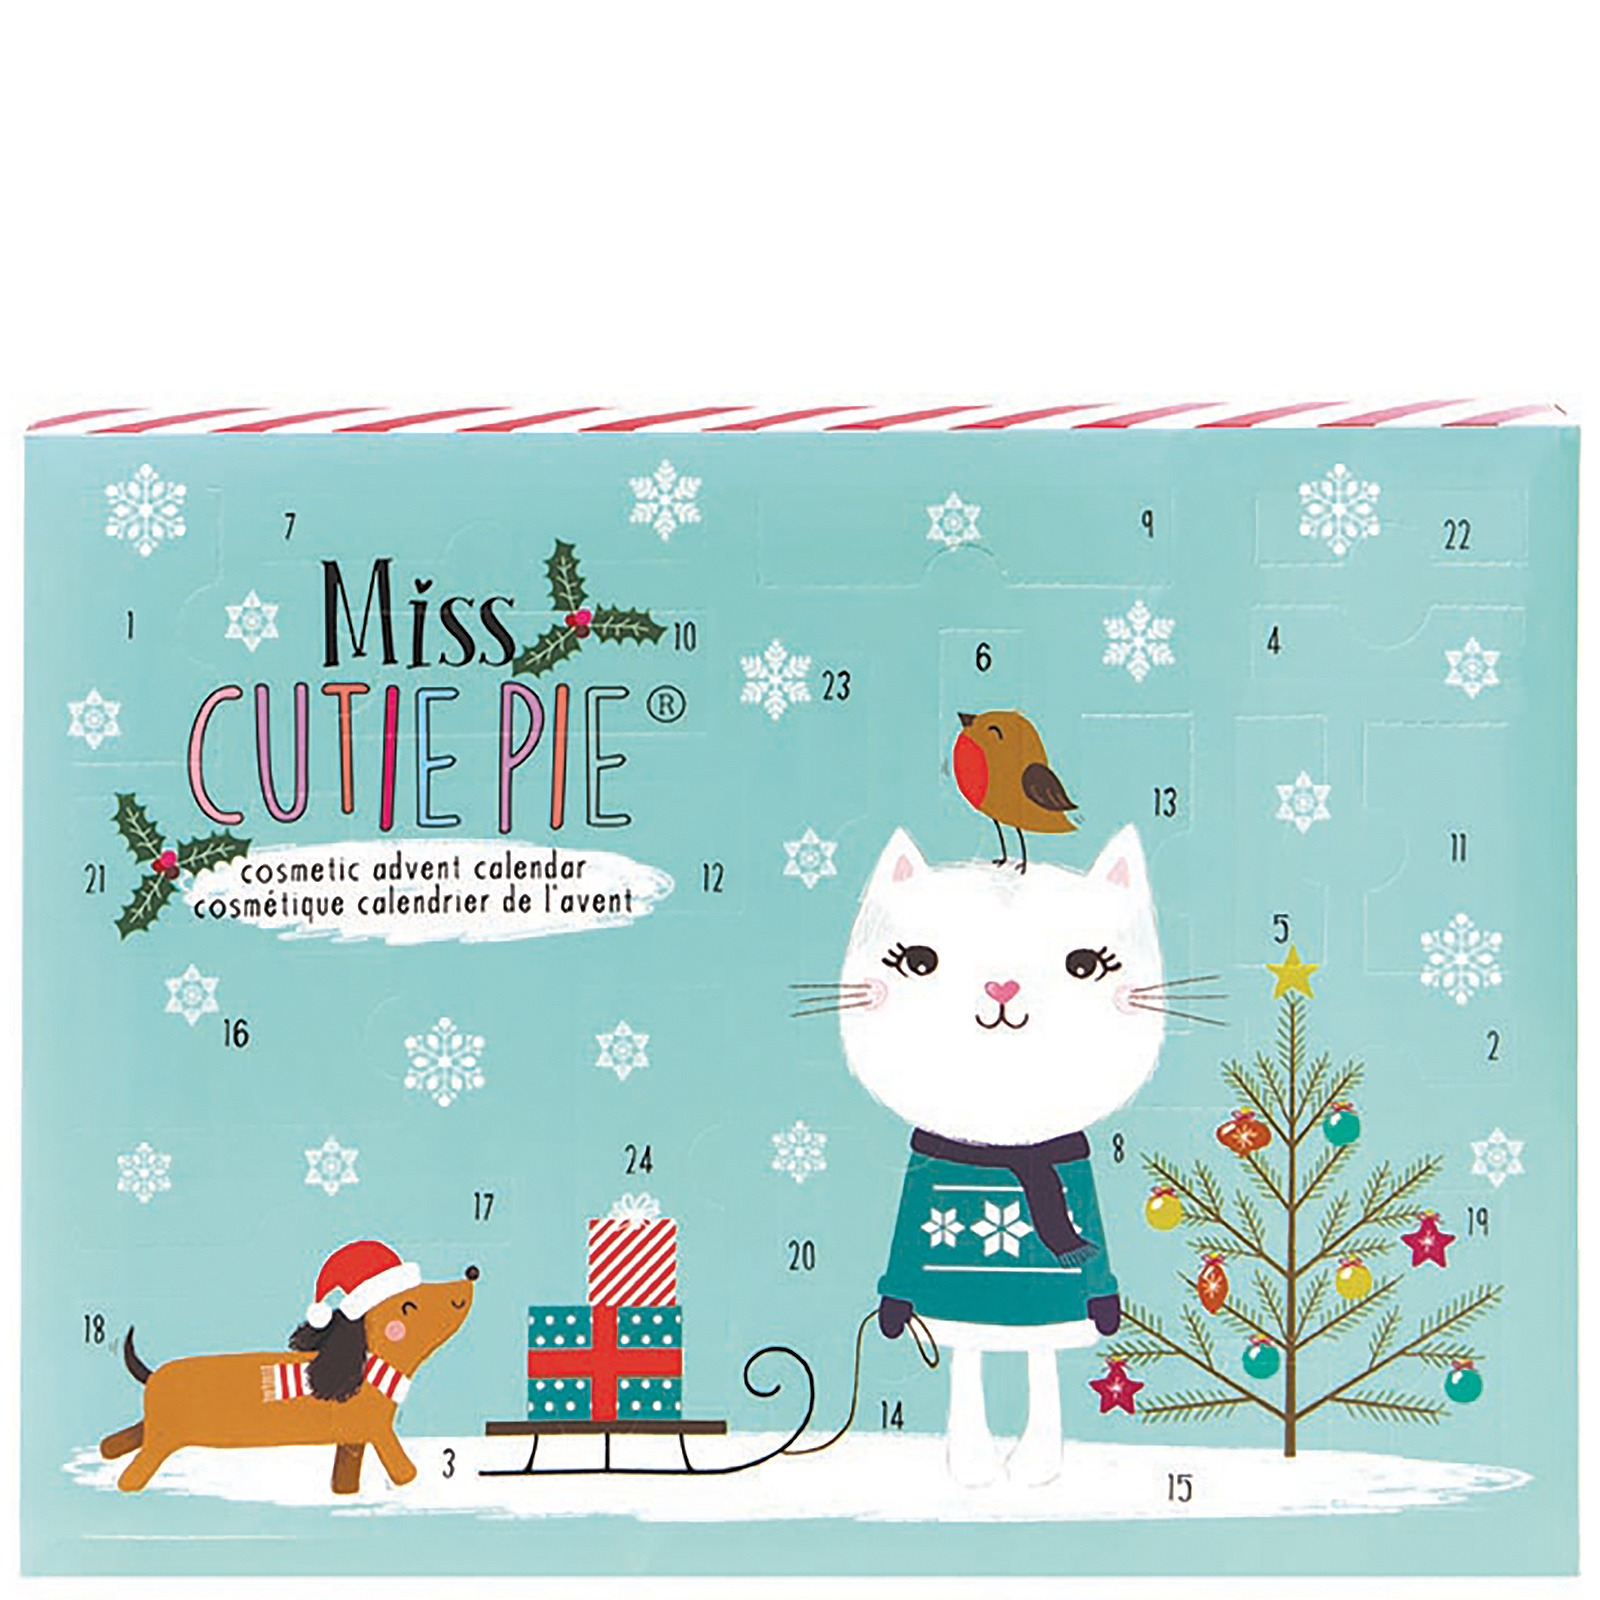 Cosmetic Advent Calendar by Miss Cutie Pie